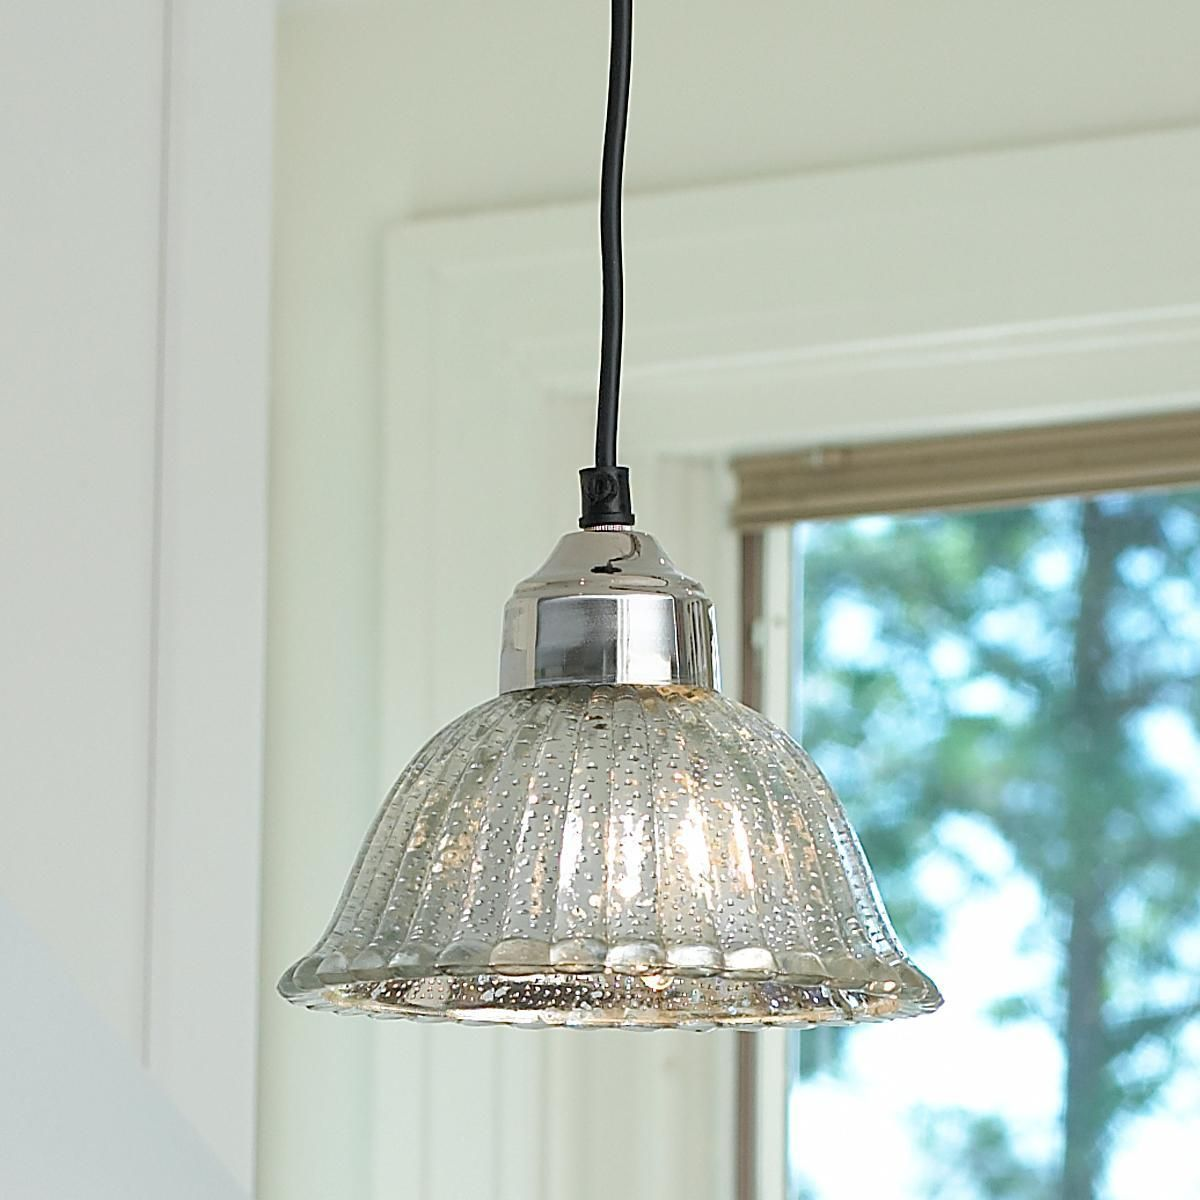 Mercury Glass Pendant Light Fixture Simple Ribbed Dome Mercury Glass Shade Pendant Light  Pinterest  Mercury Inspiration